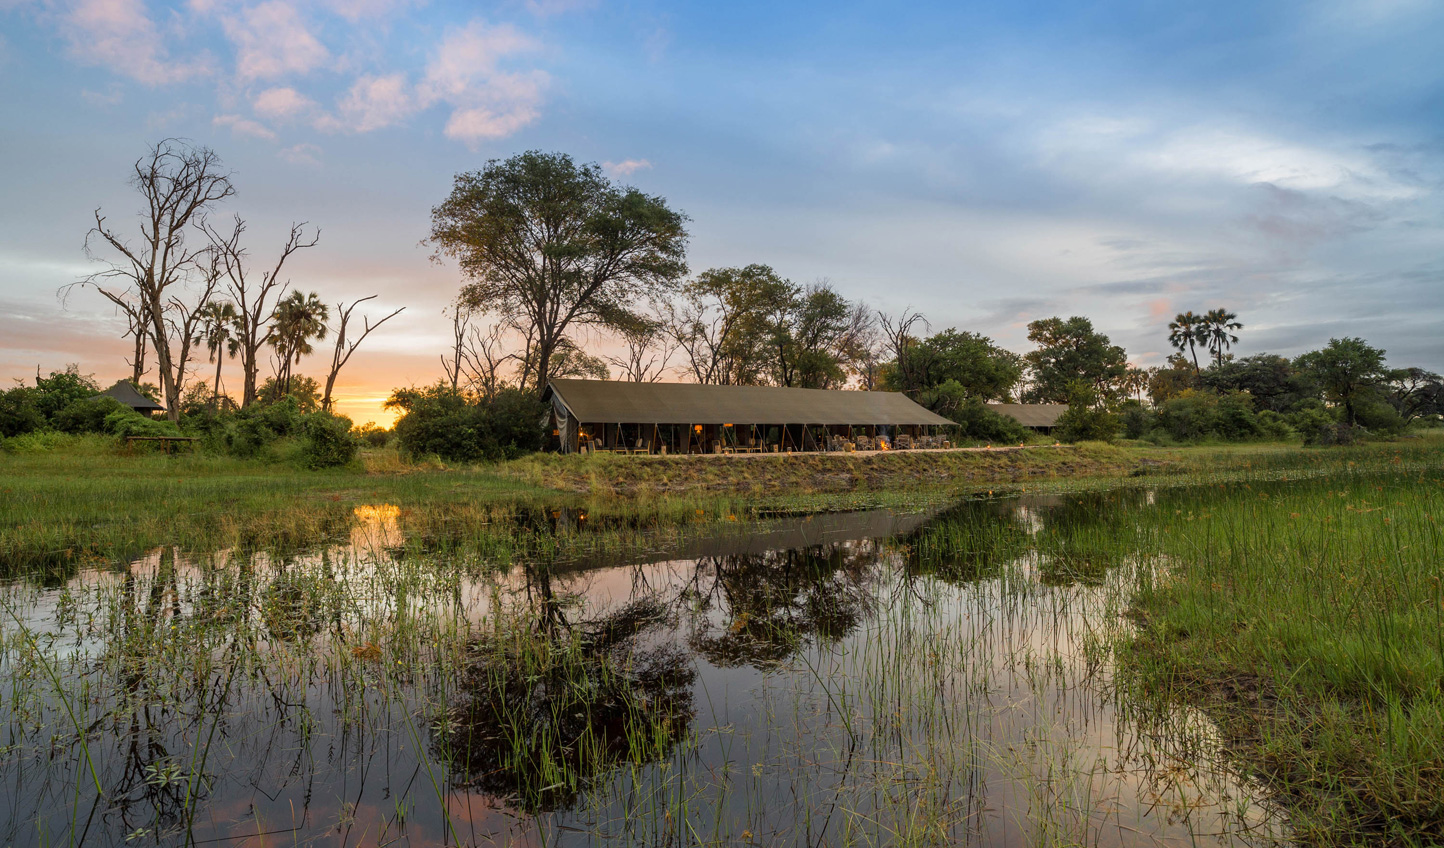 The idyllic Gomoti Plains Camp in the heart of the Delta